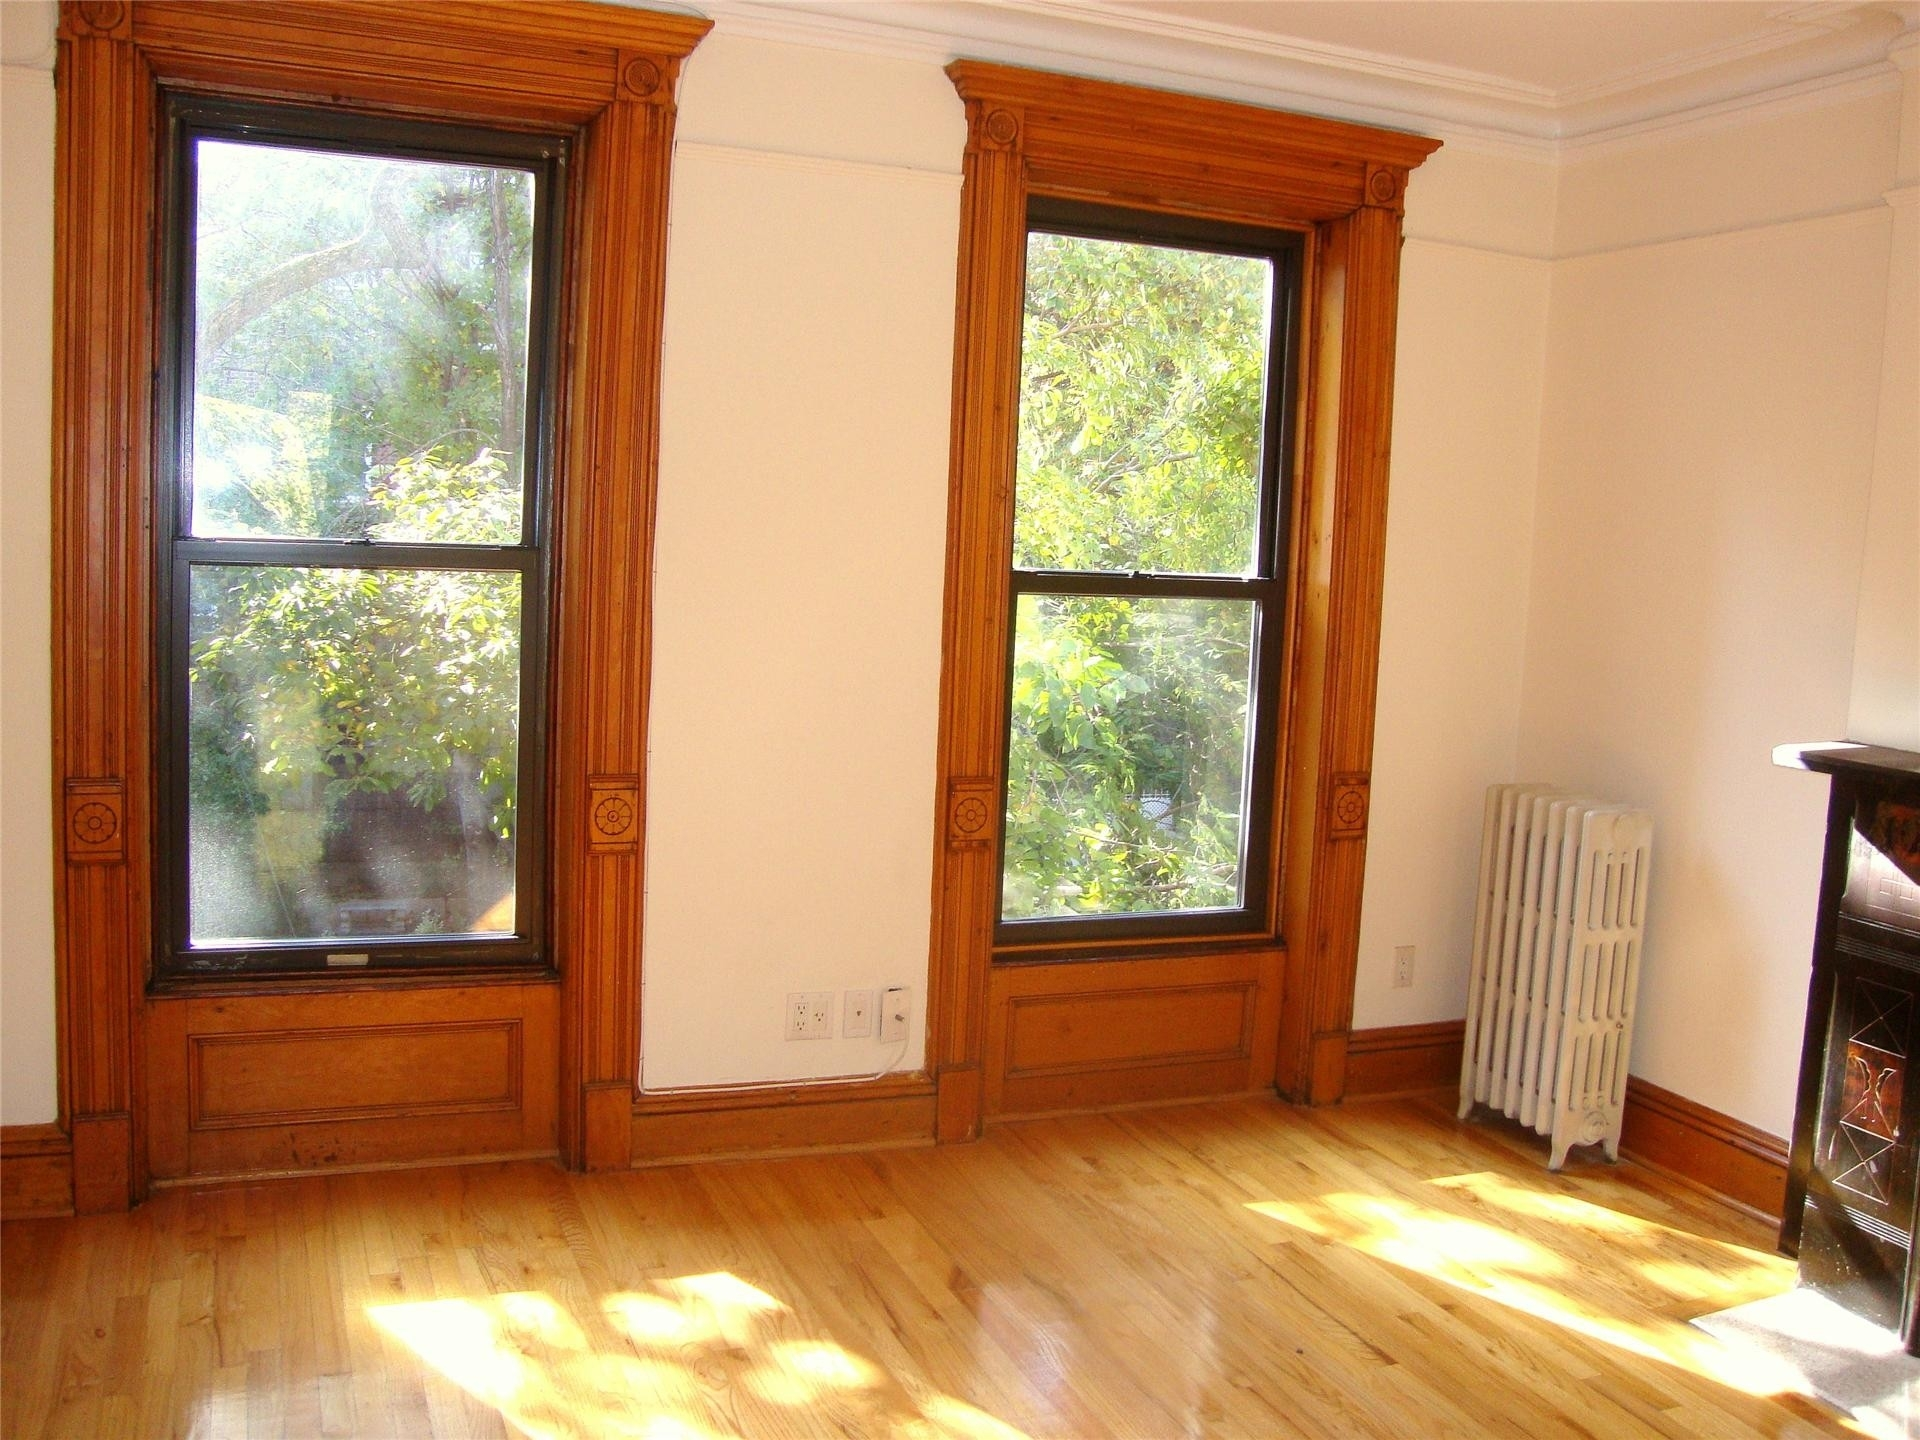 2. 建於204 Prospect Pl, Prospect Heights, Brooklyn, NY